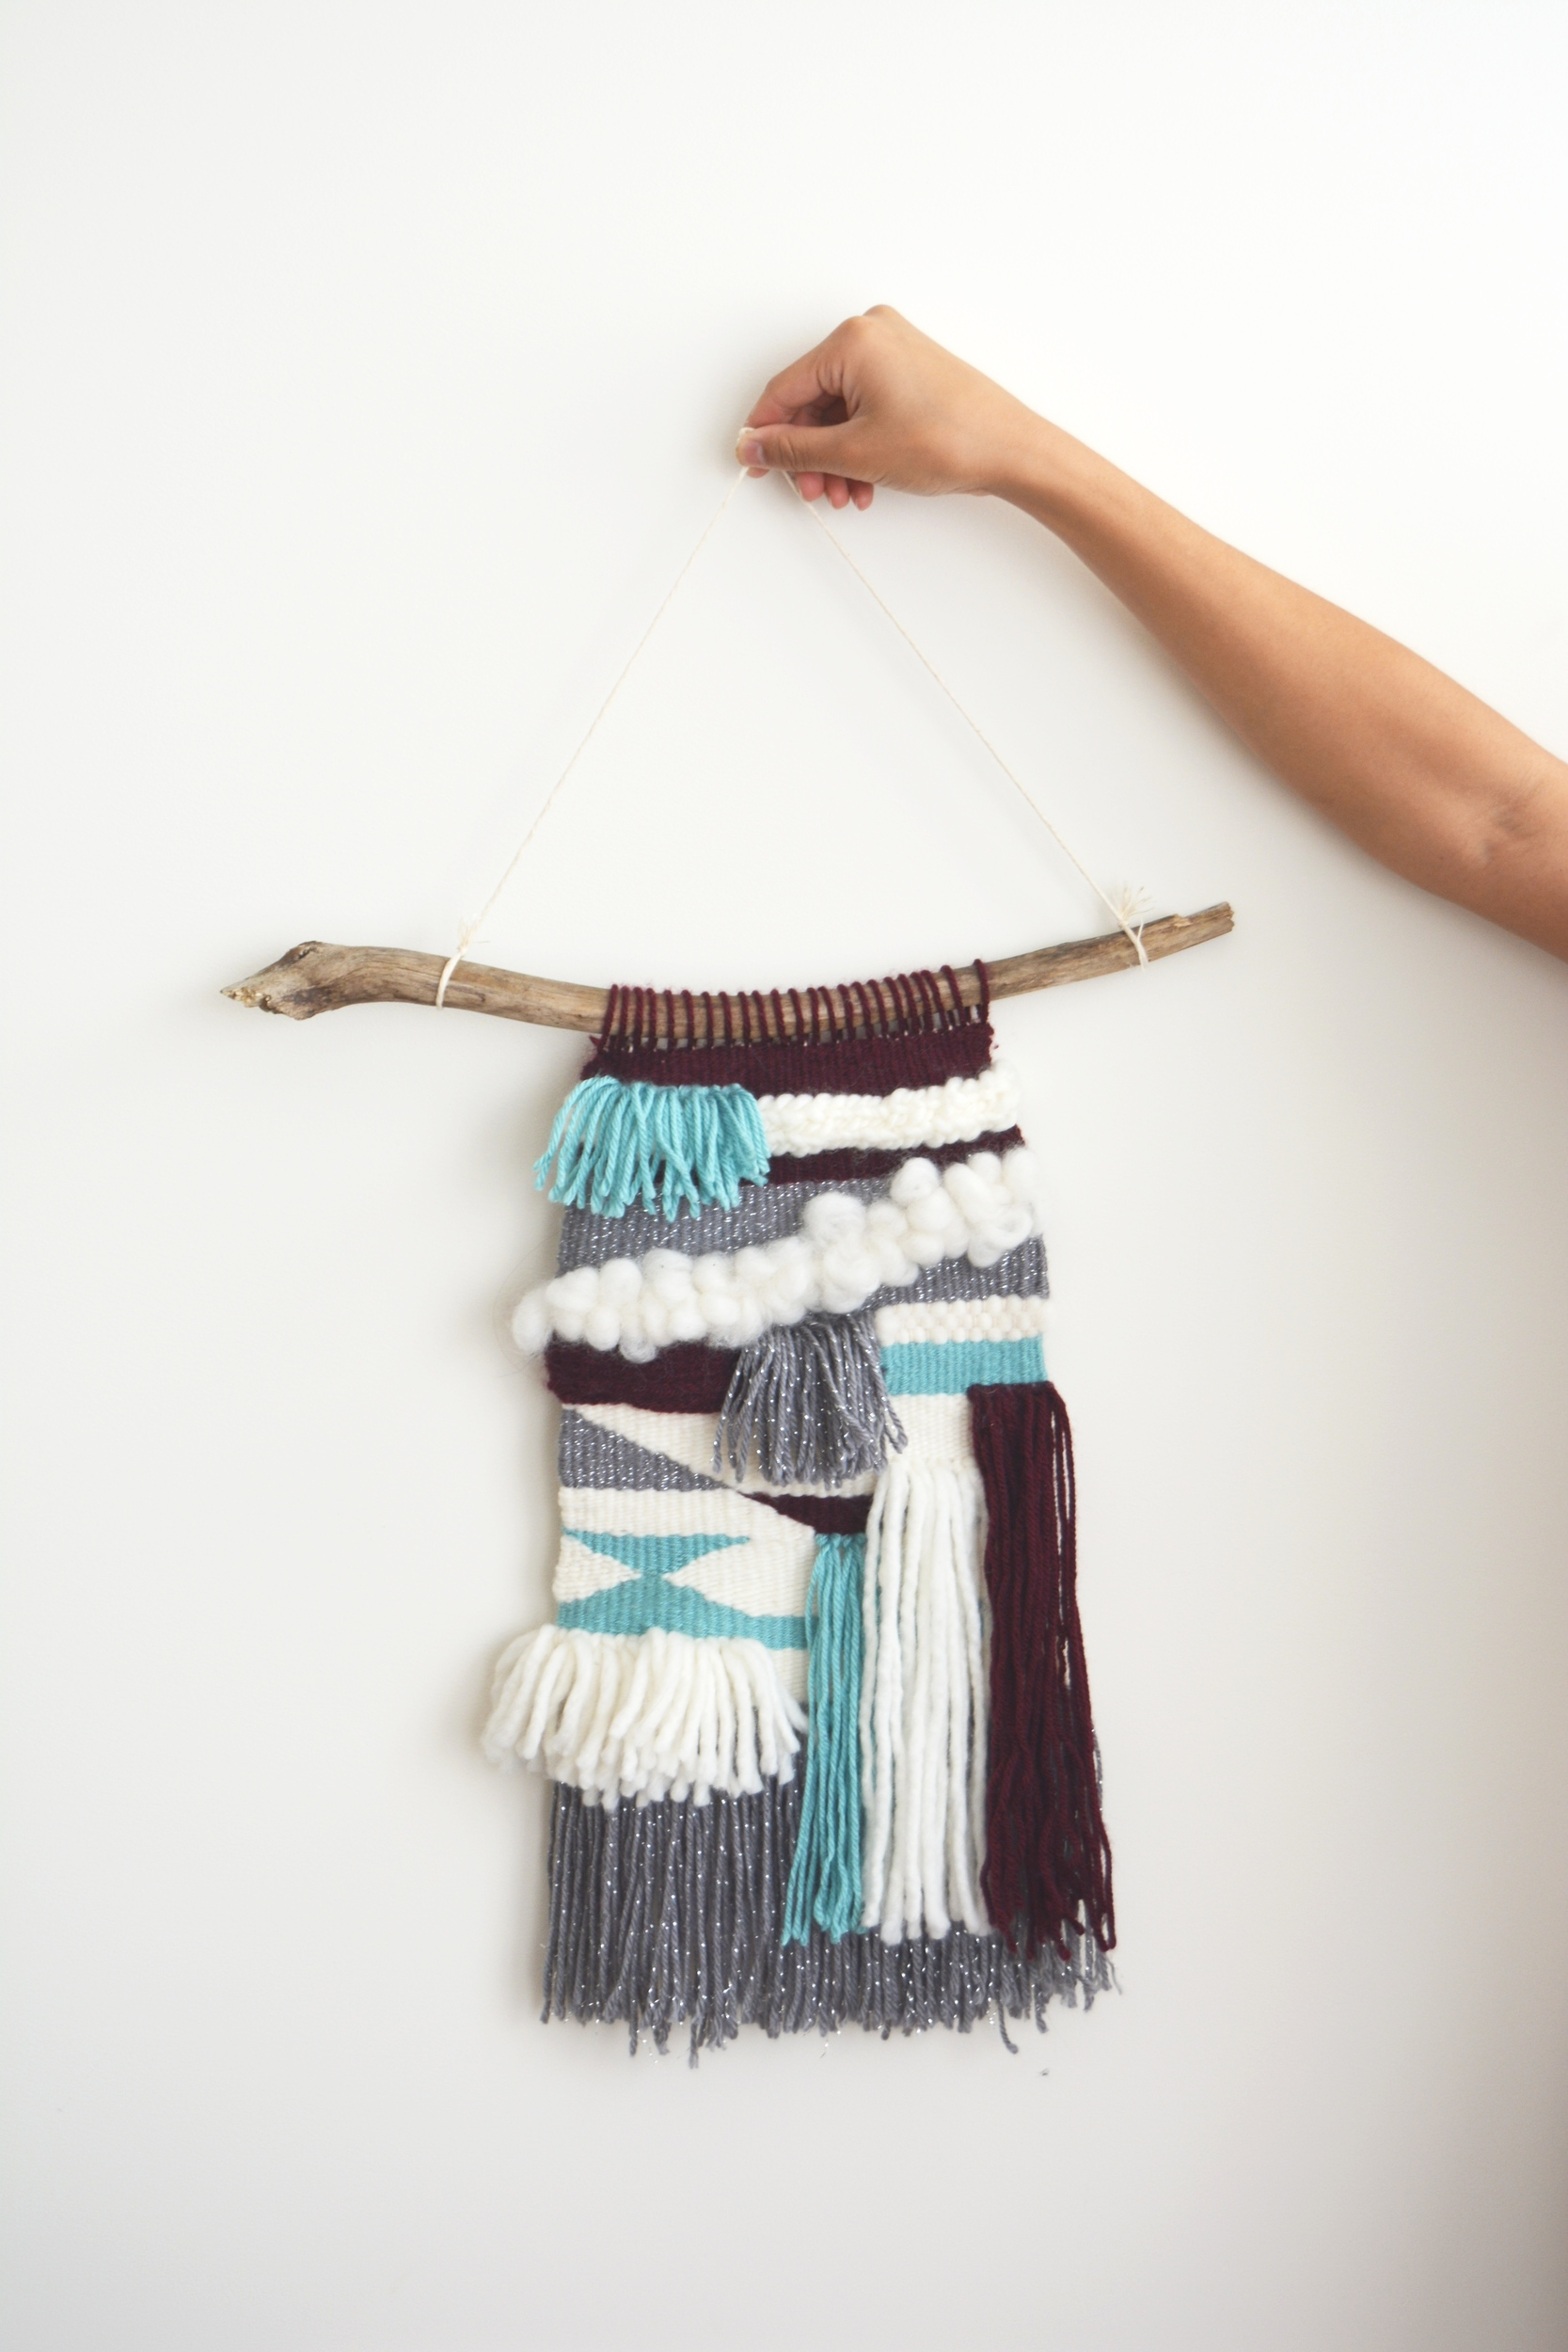 Woven Wall Hanging Tapestry - Holding